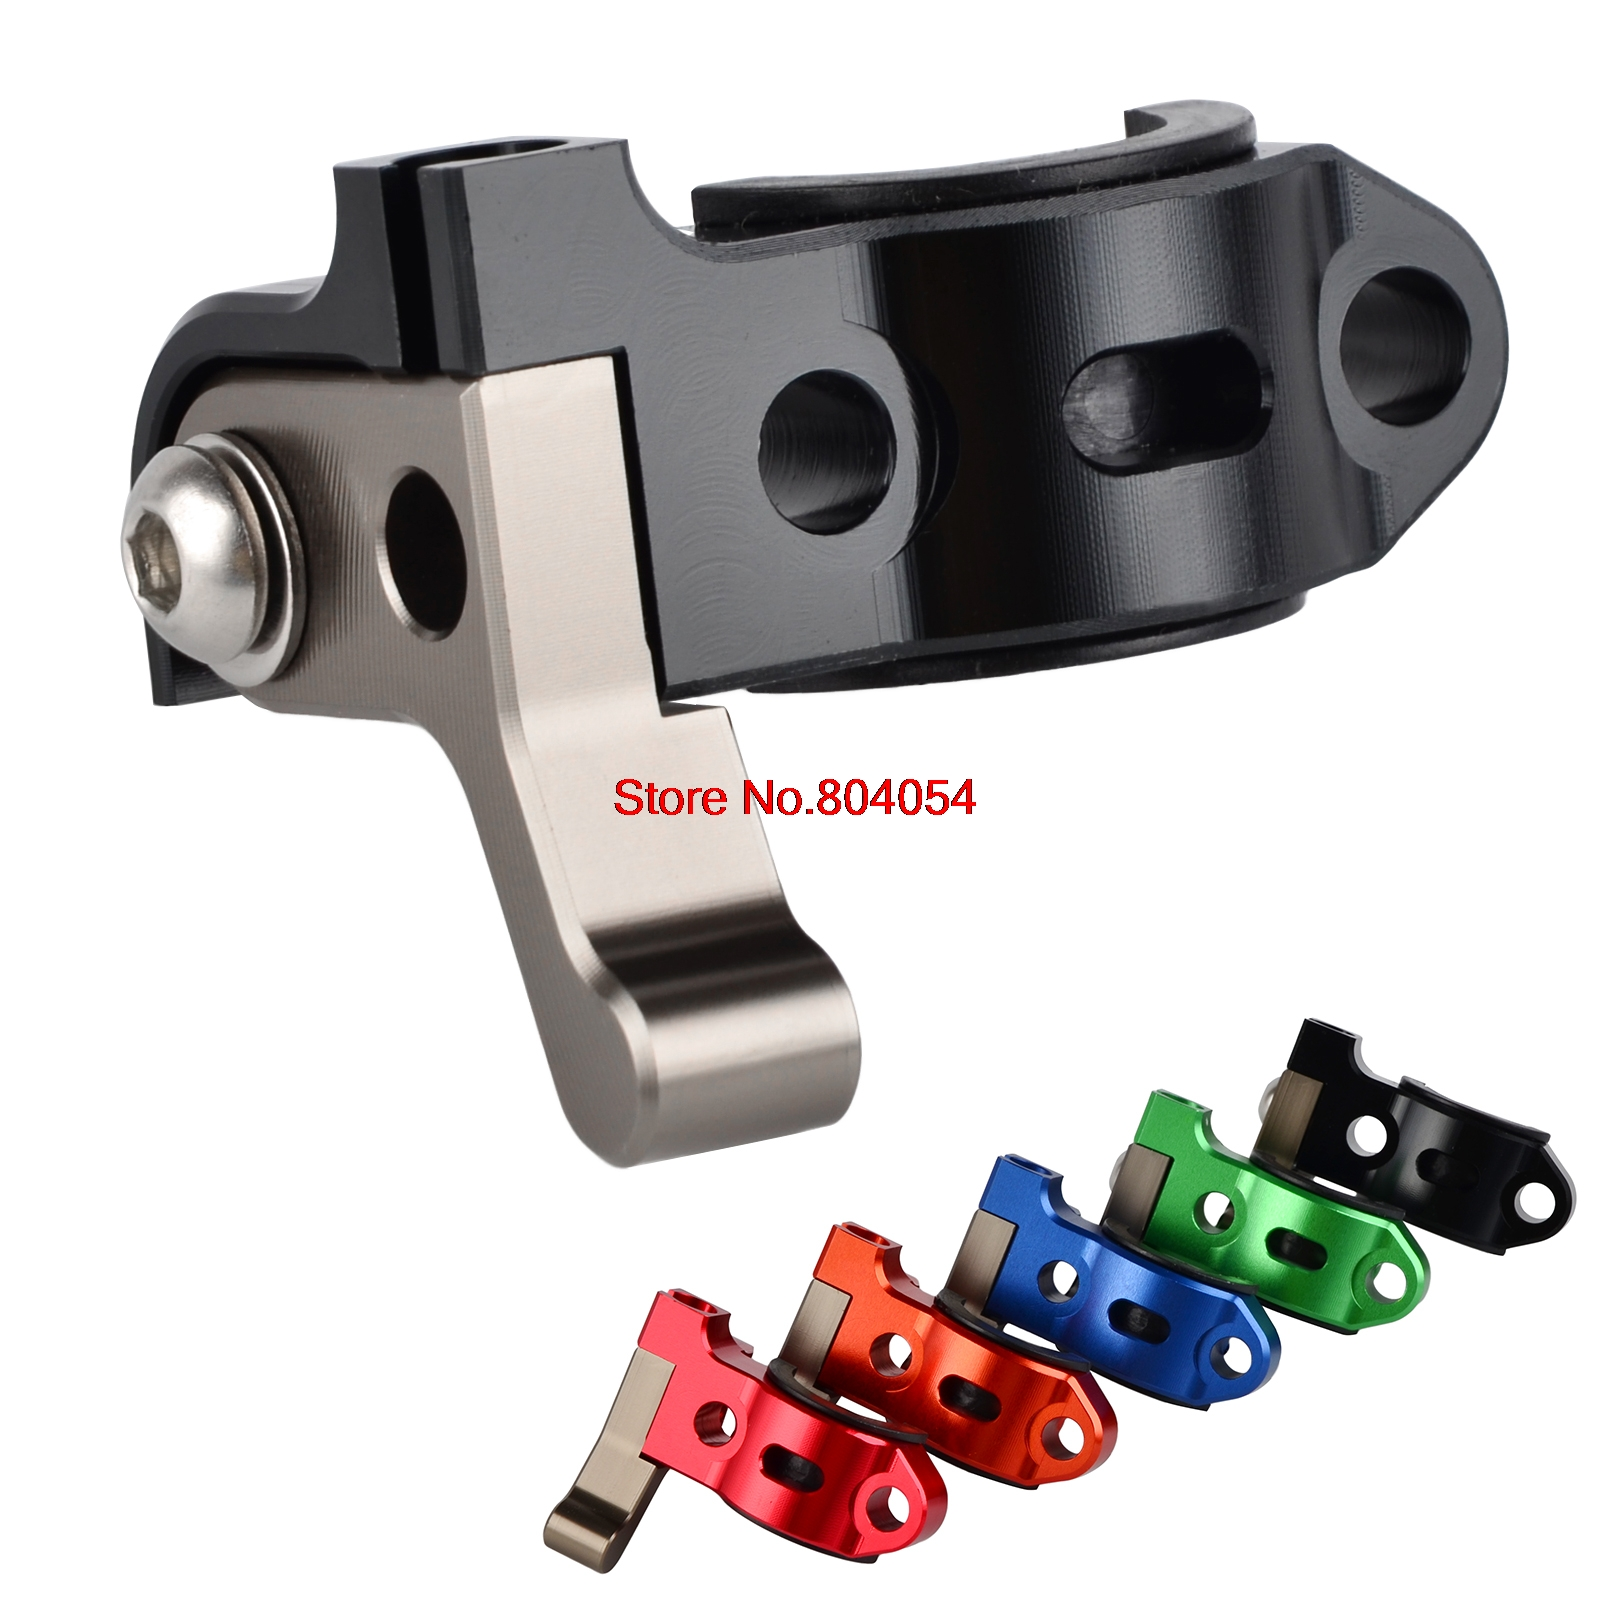 Rotating Bar Clamp Hot Start Lever For Honda XR250L XR250R XR400R XR600R XR650L XR650R XR 250L 250R 400R 600R 650L 650R колонка bbk ma 845s black